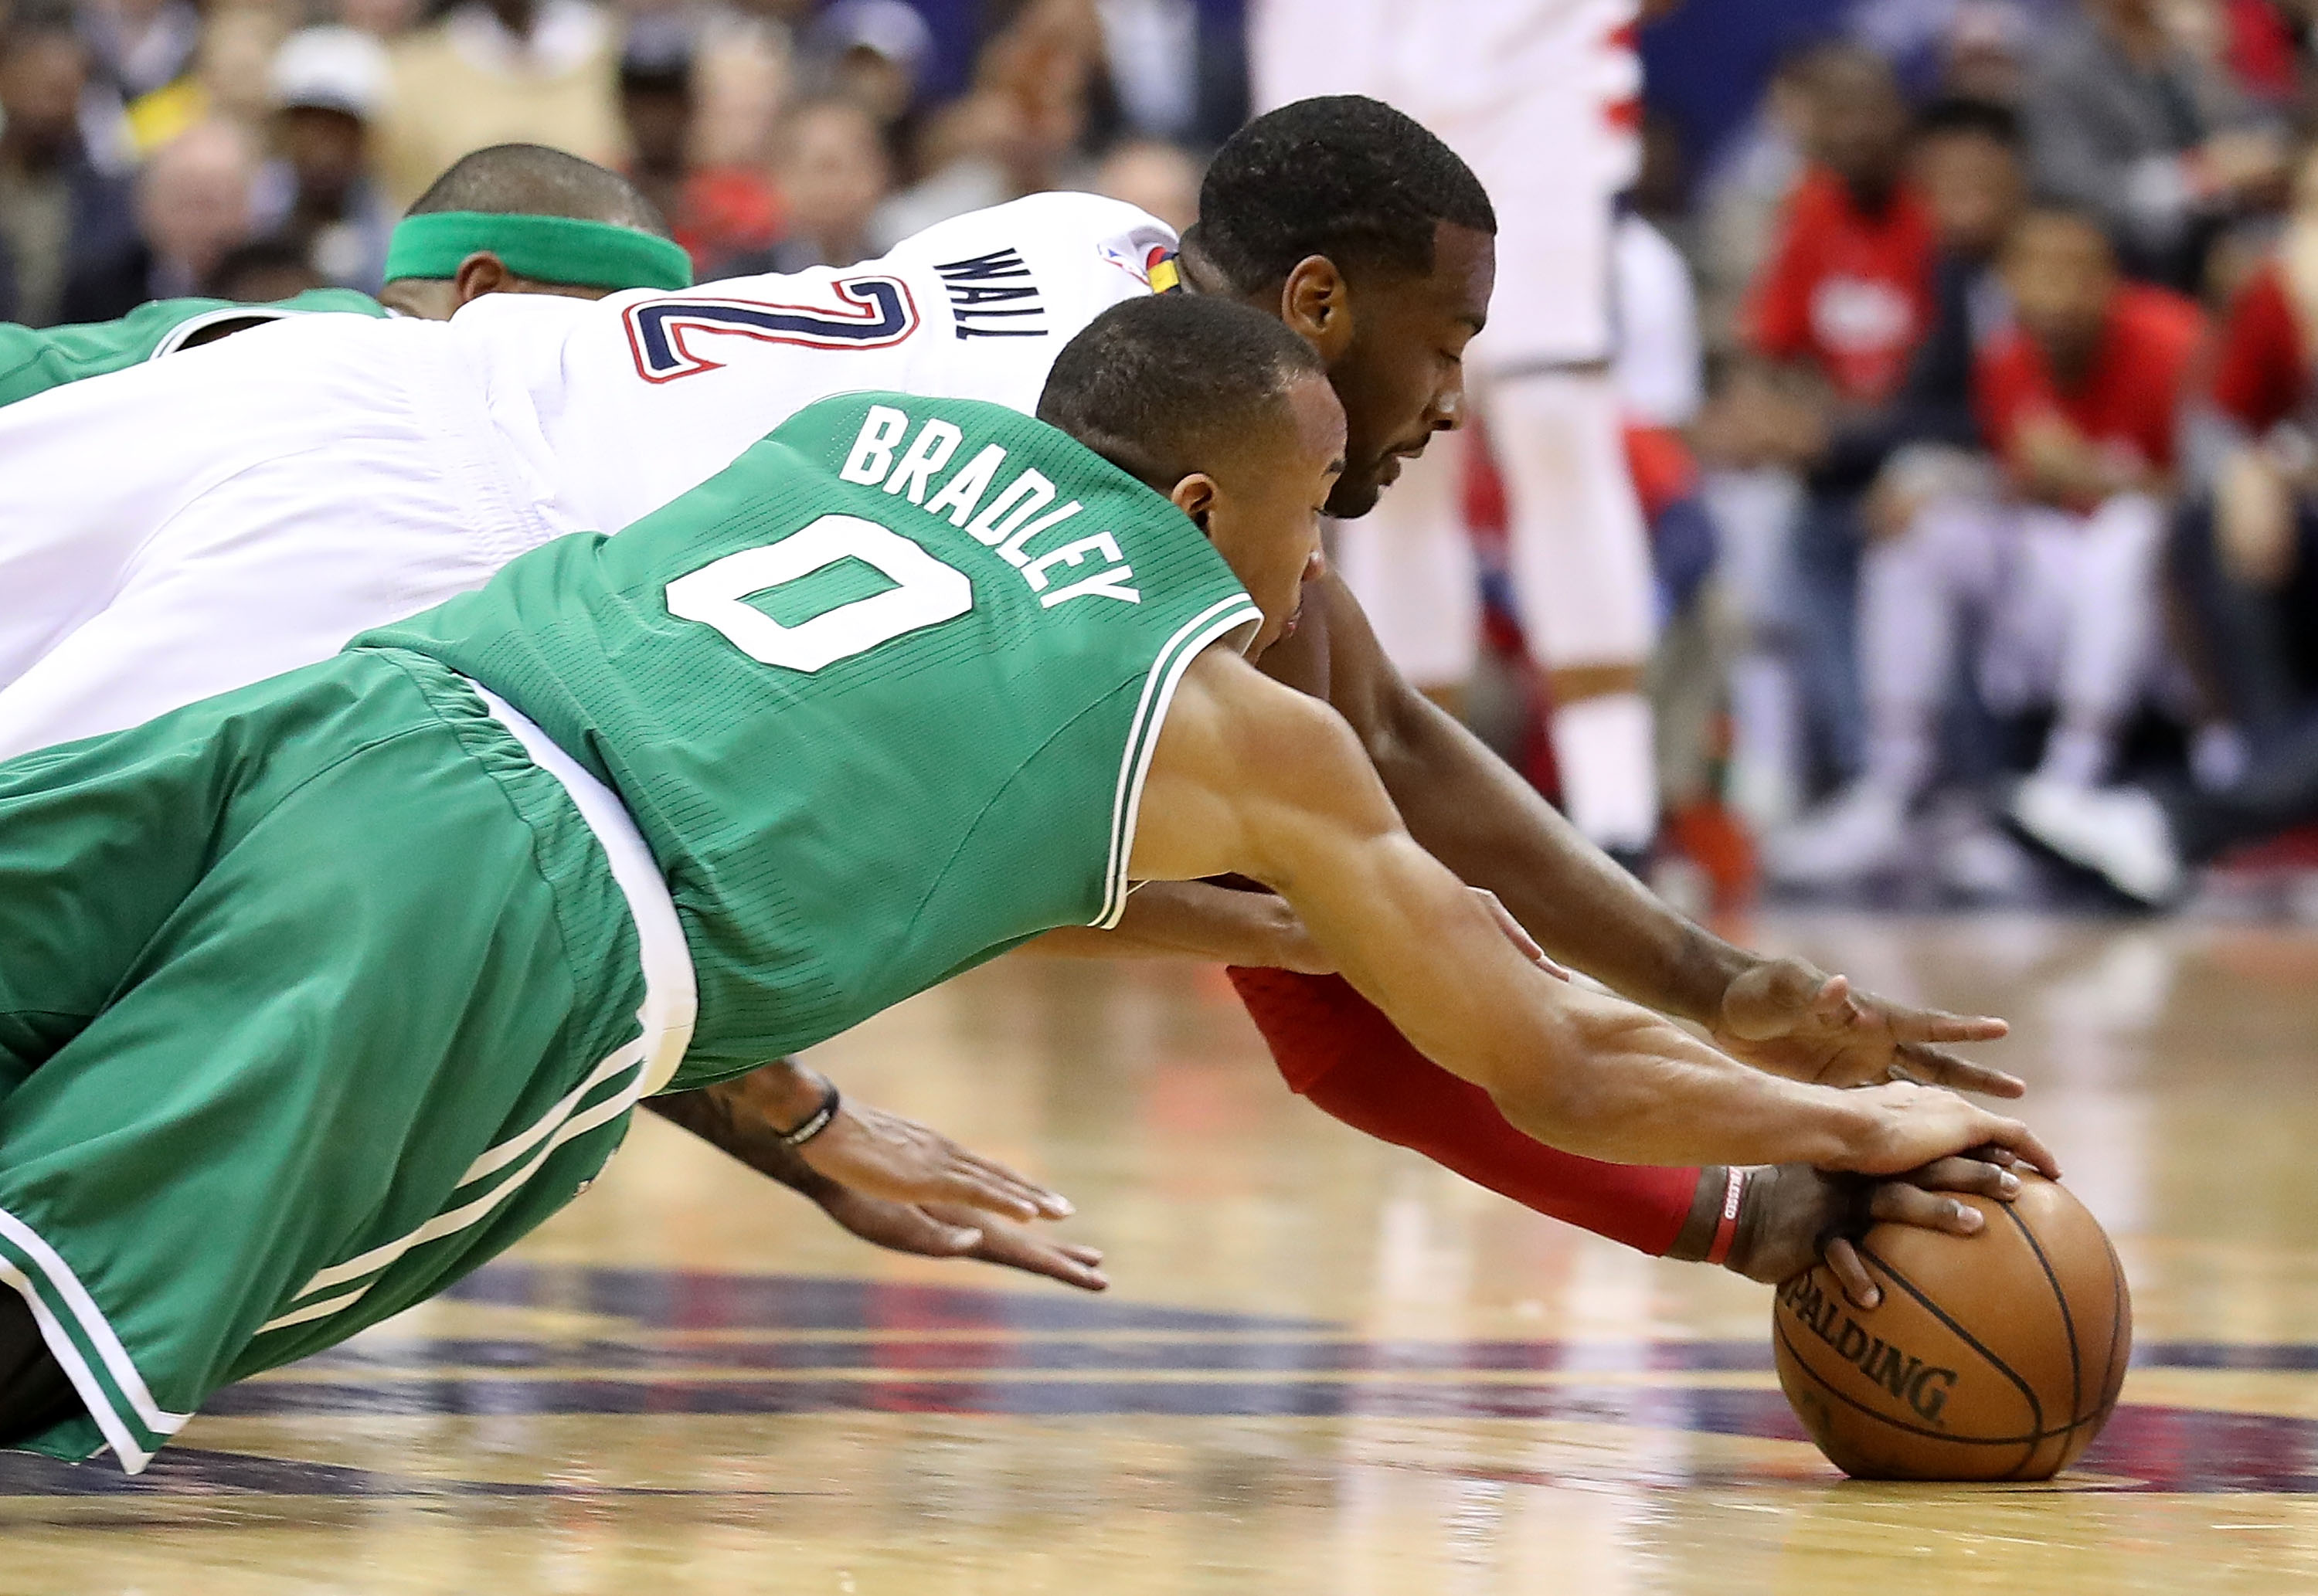 3 reasons the heavily-favored Cavaliers shouldn't overlook the Celtics